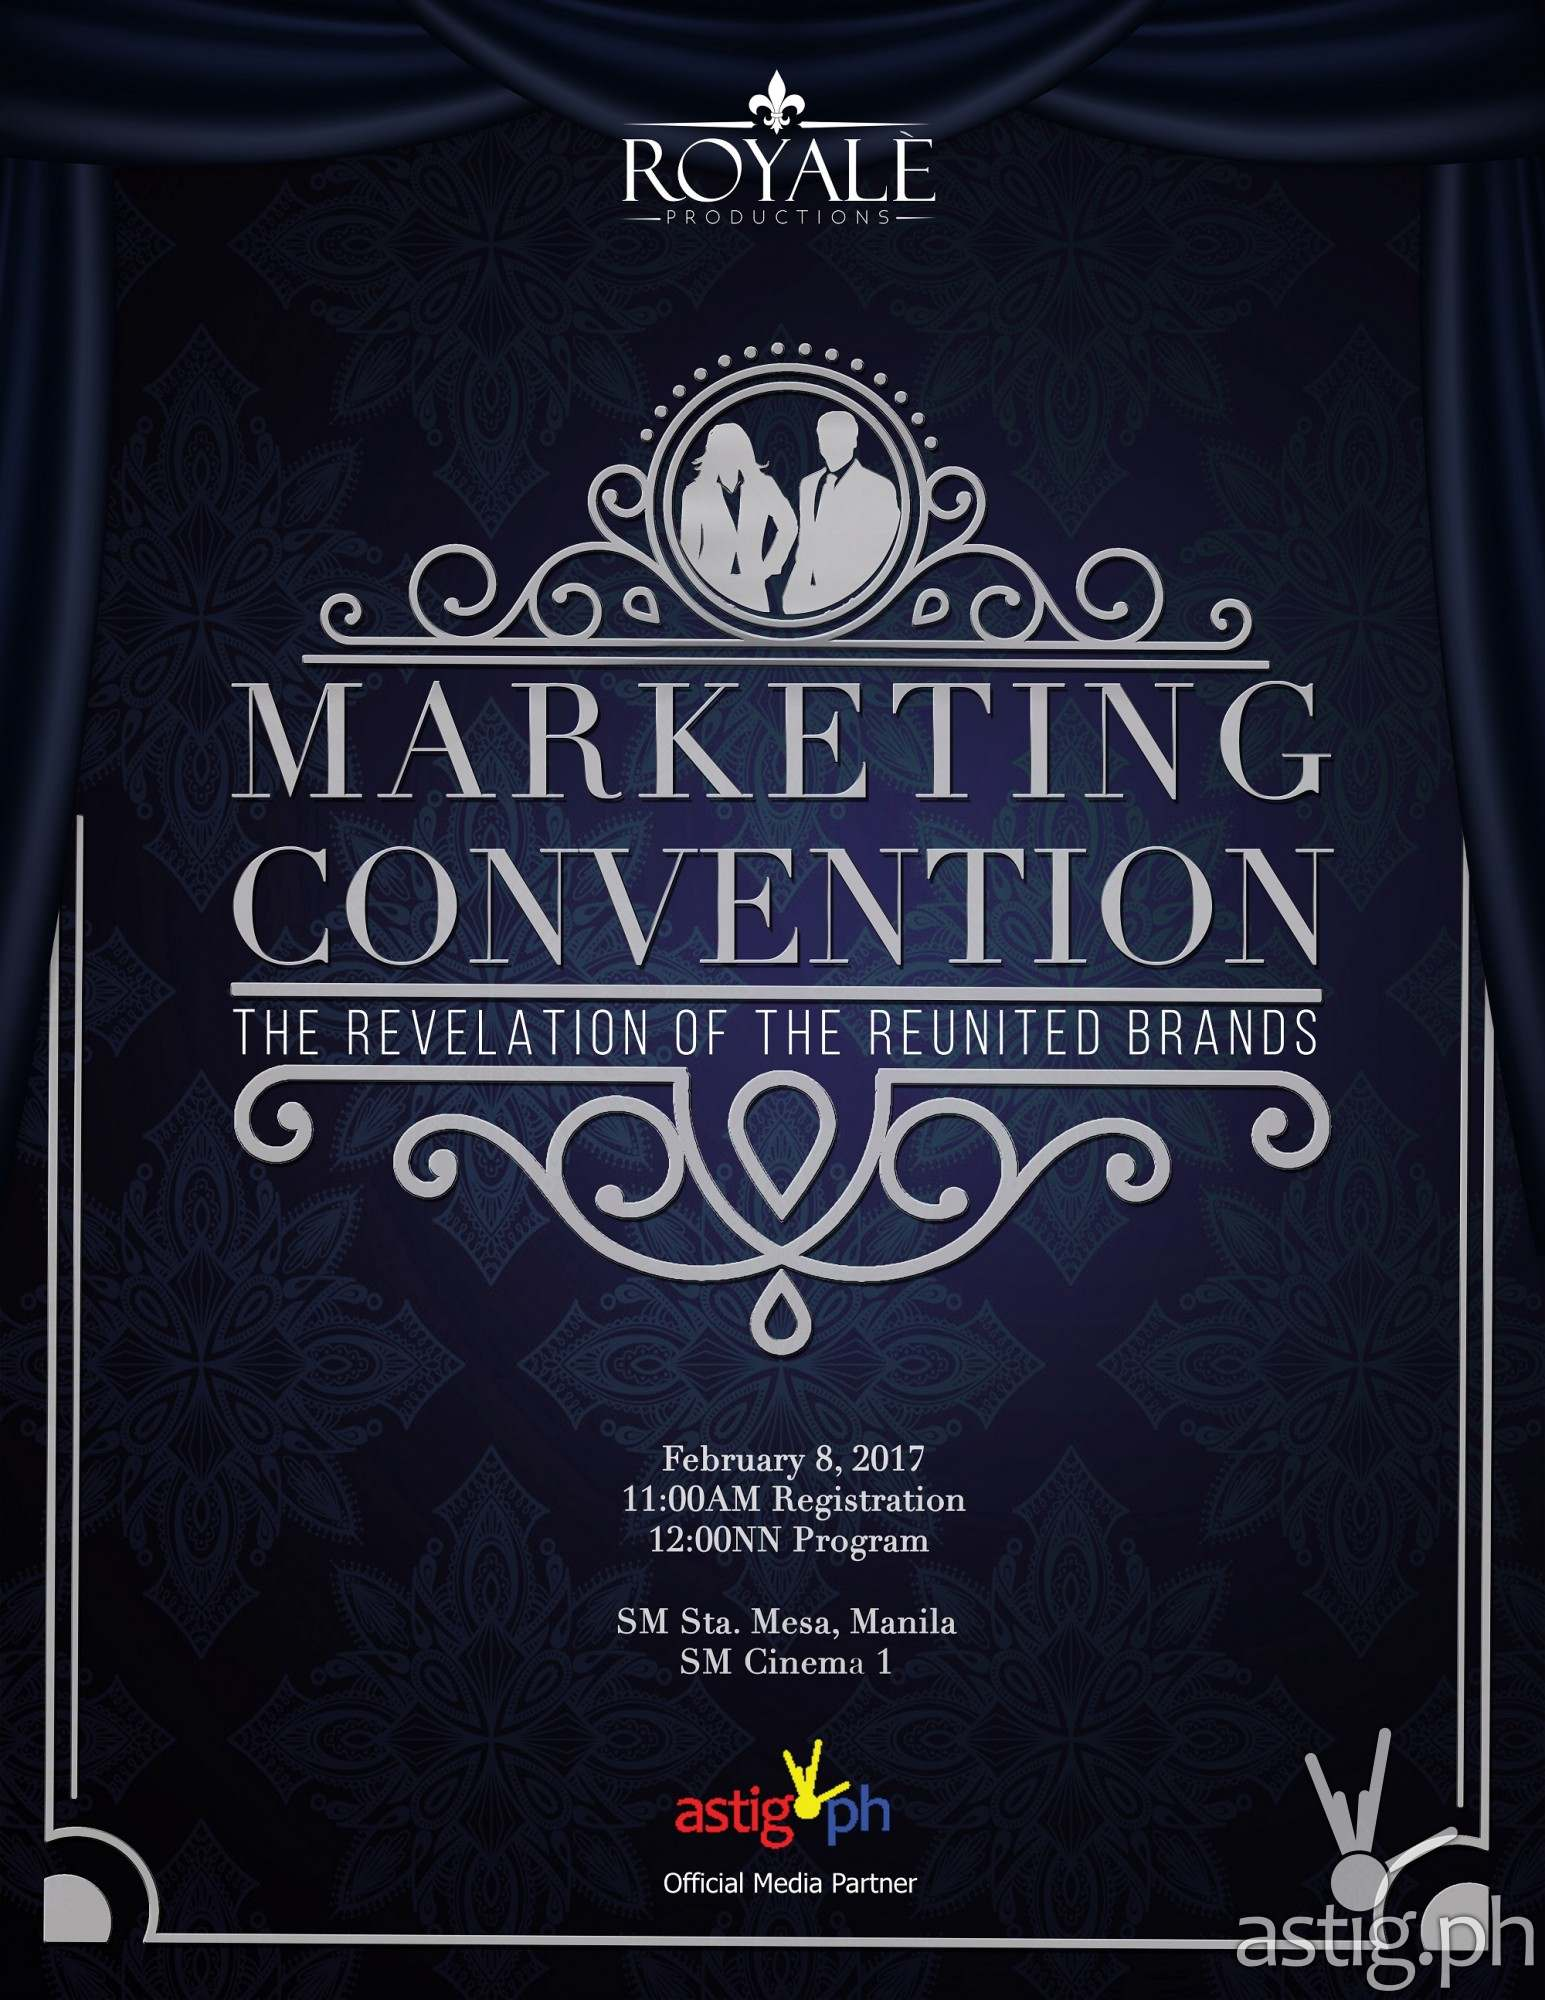 royale marketing convention